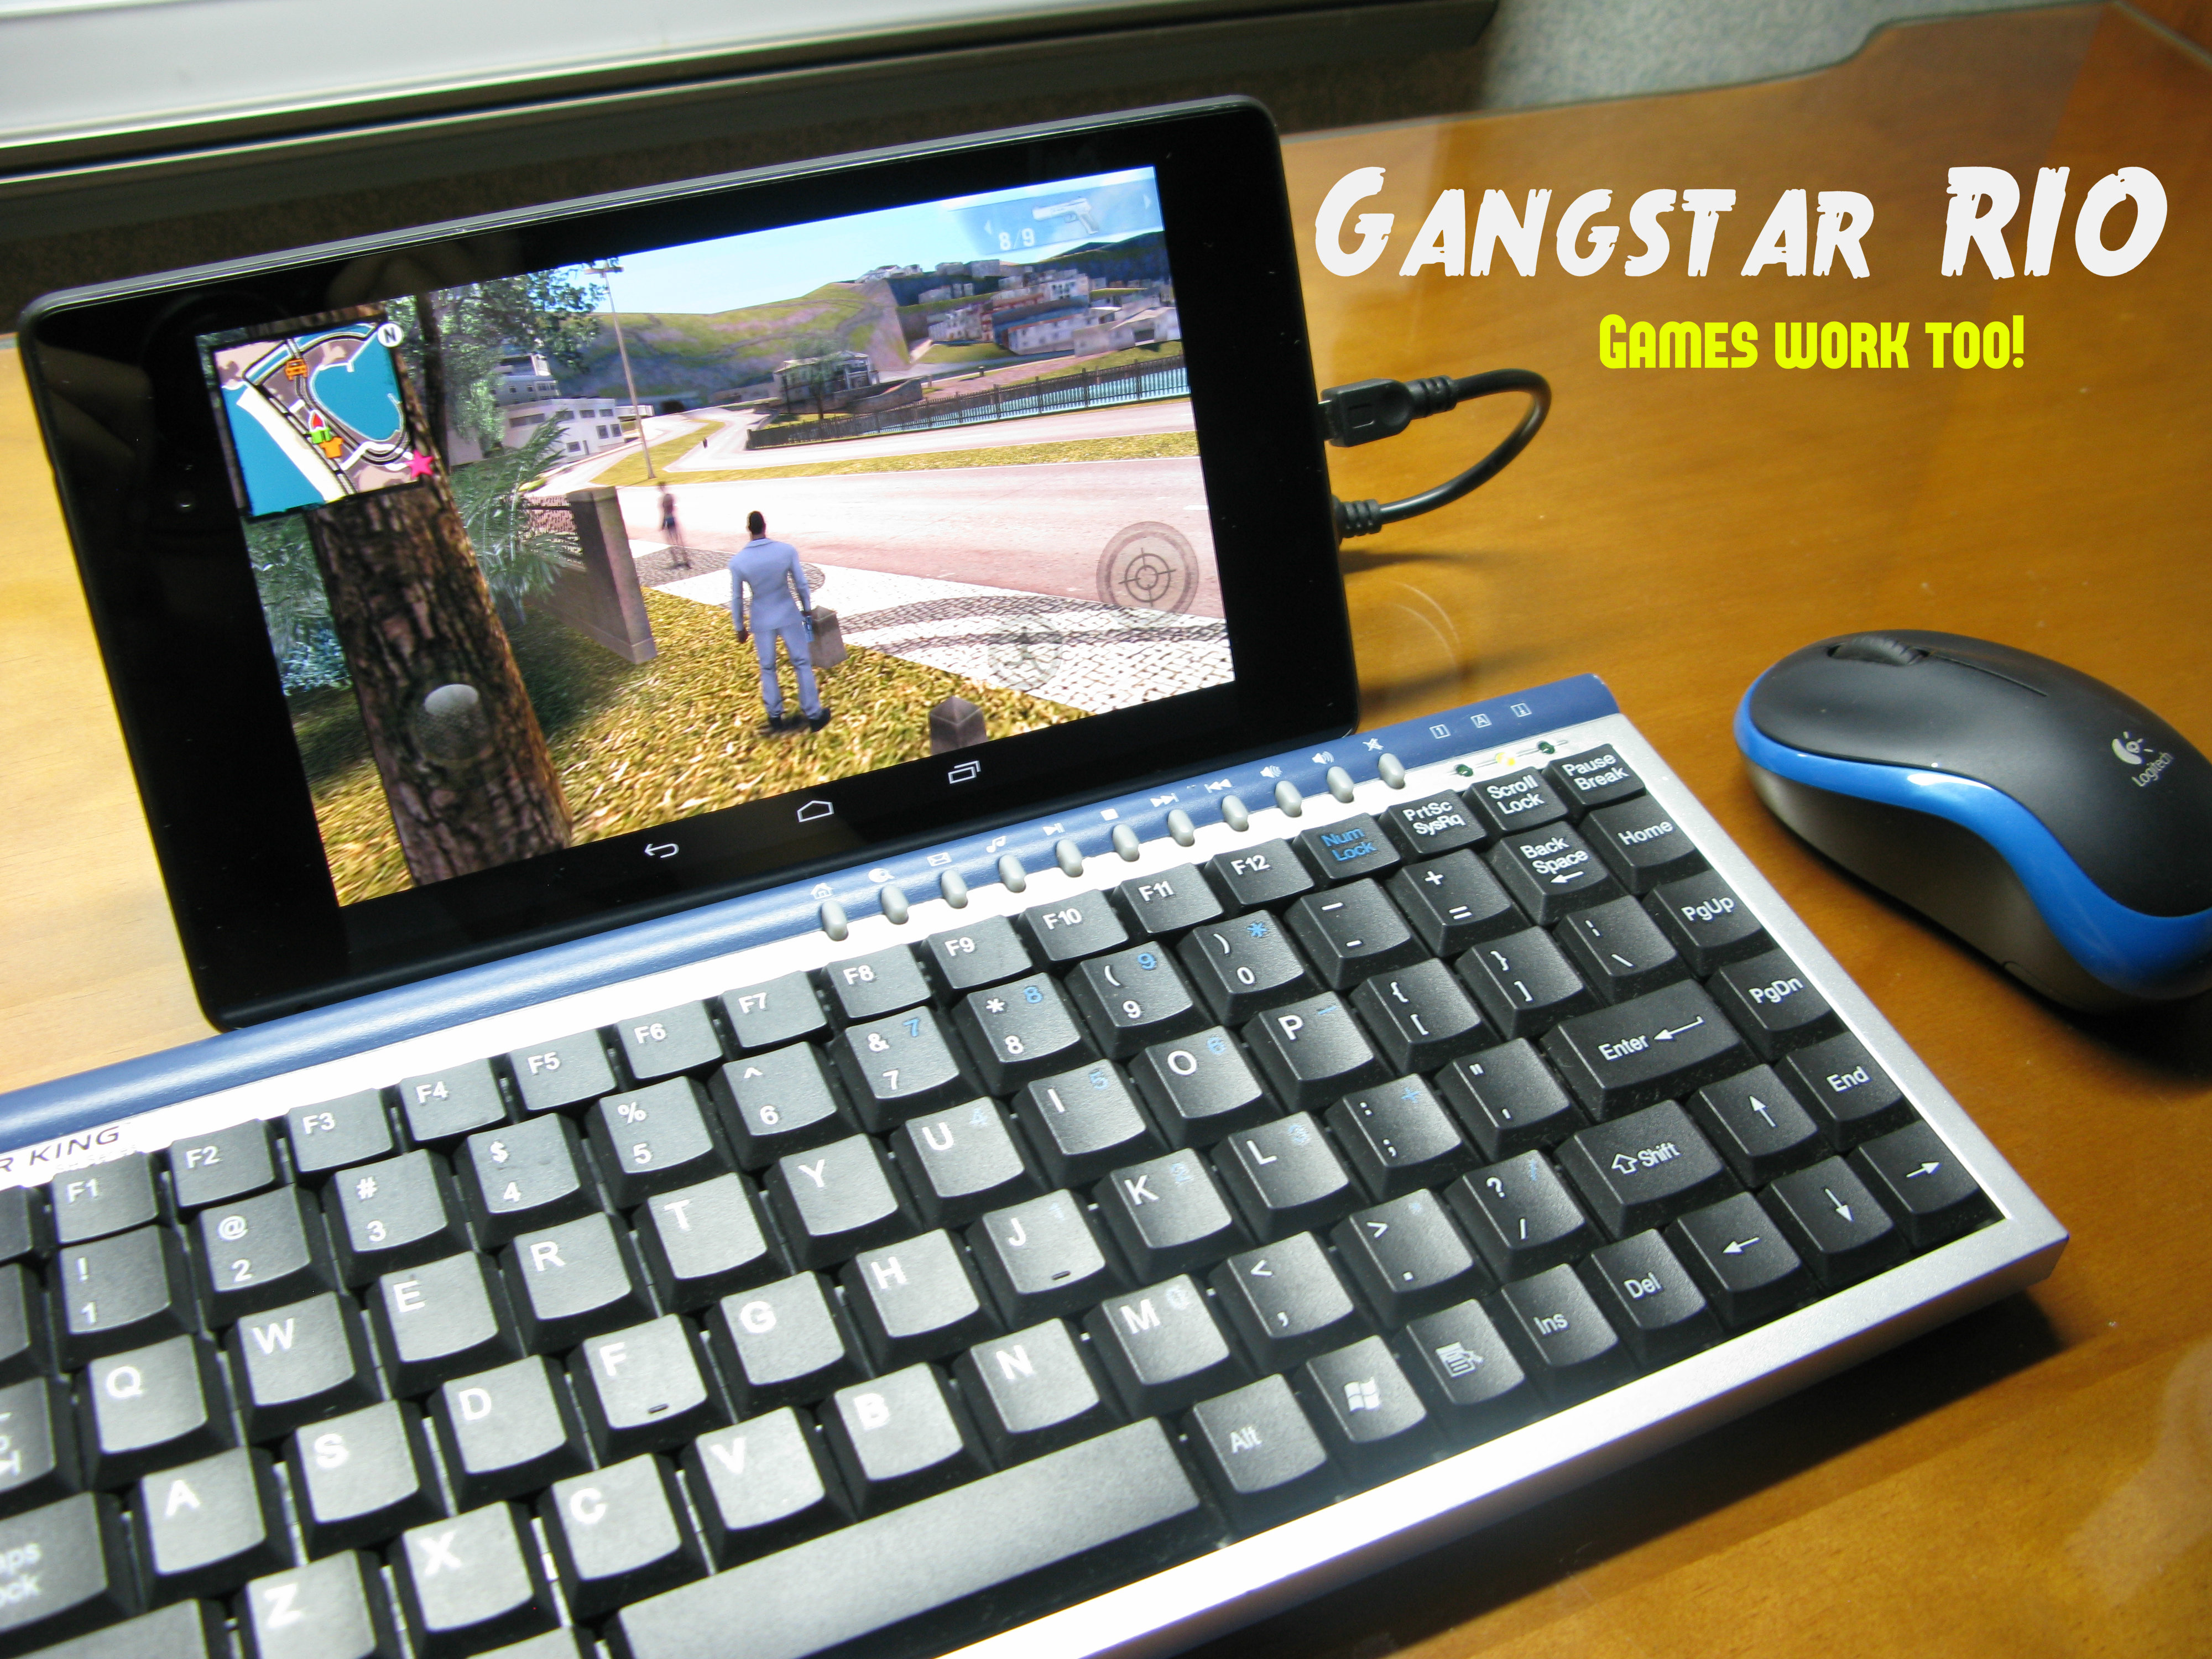 Picture of Keyboard & Mouse for Tablets (Nexus 7)